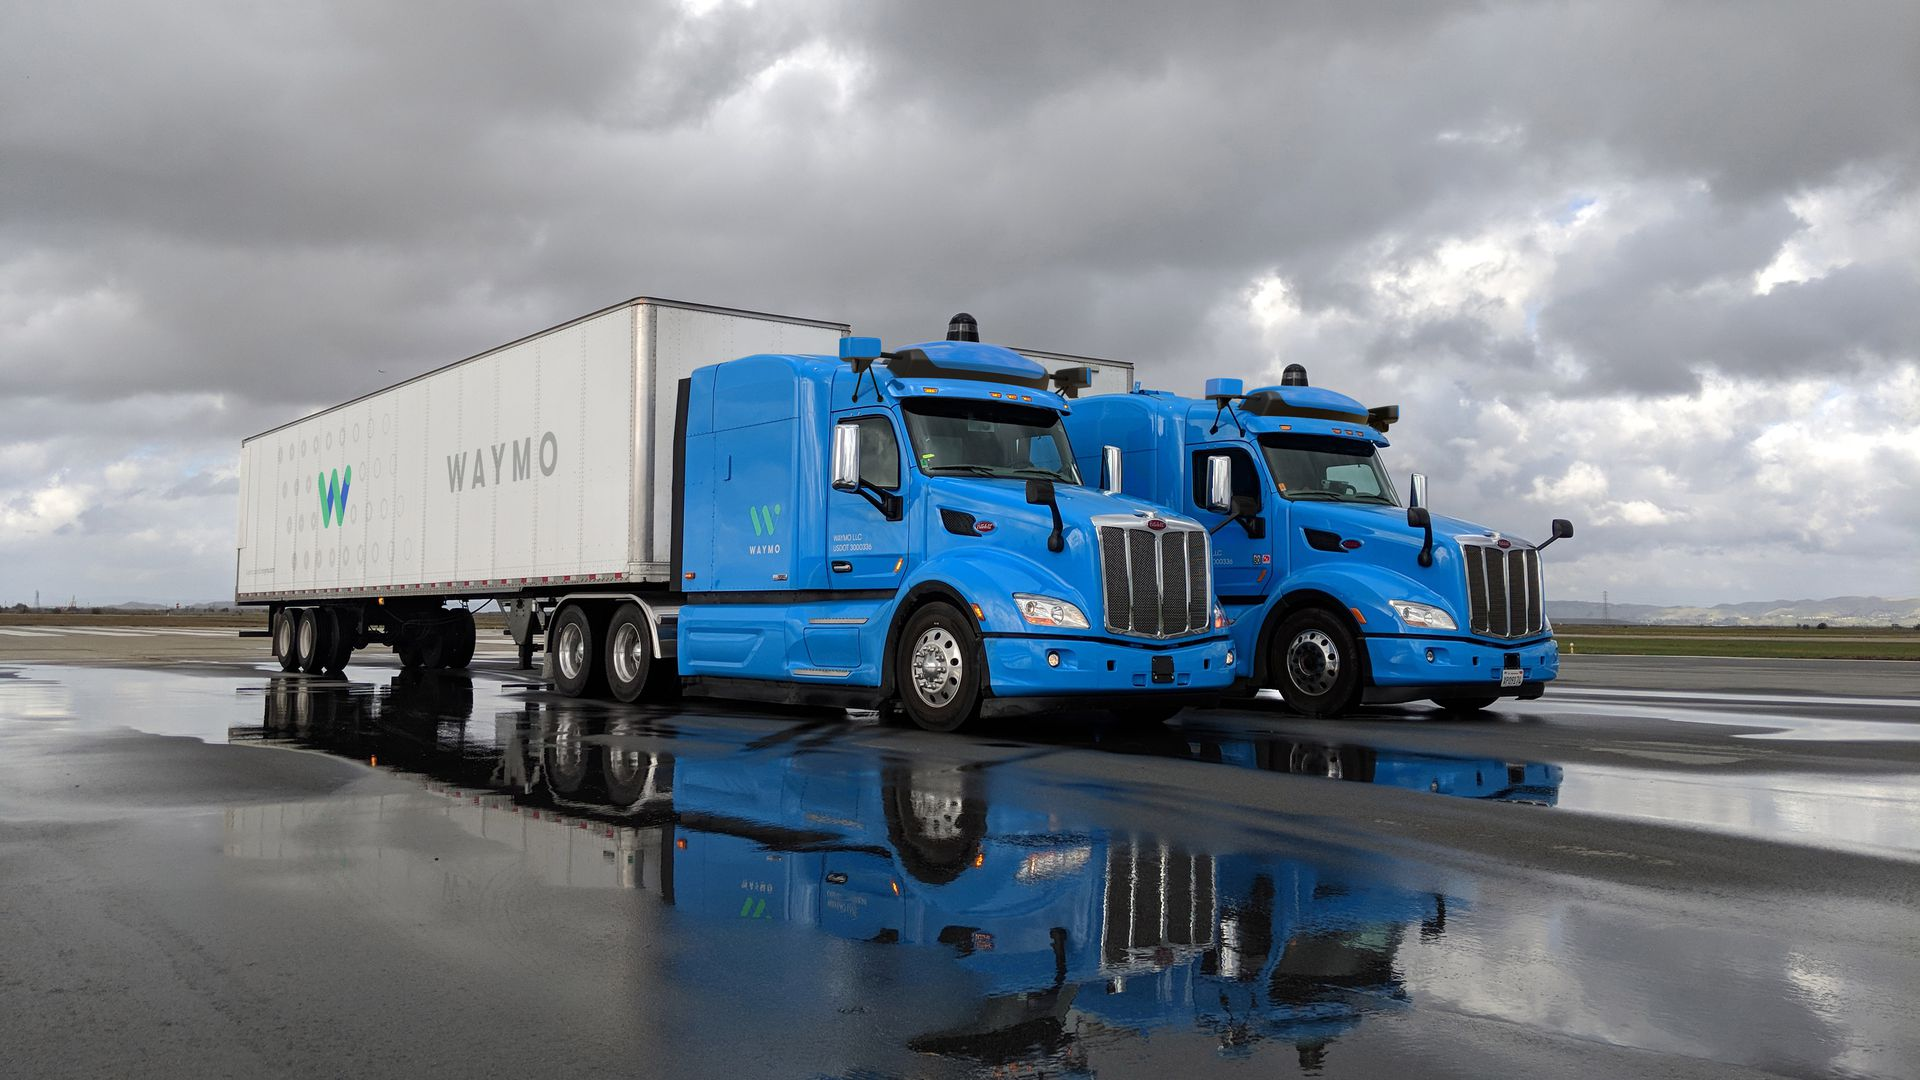 image of 2 commercial trucks operated by Waymo's self-driving technology